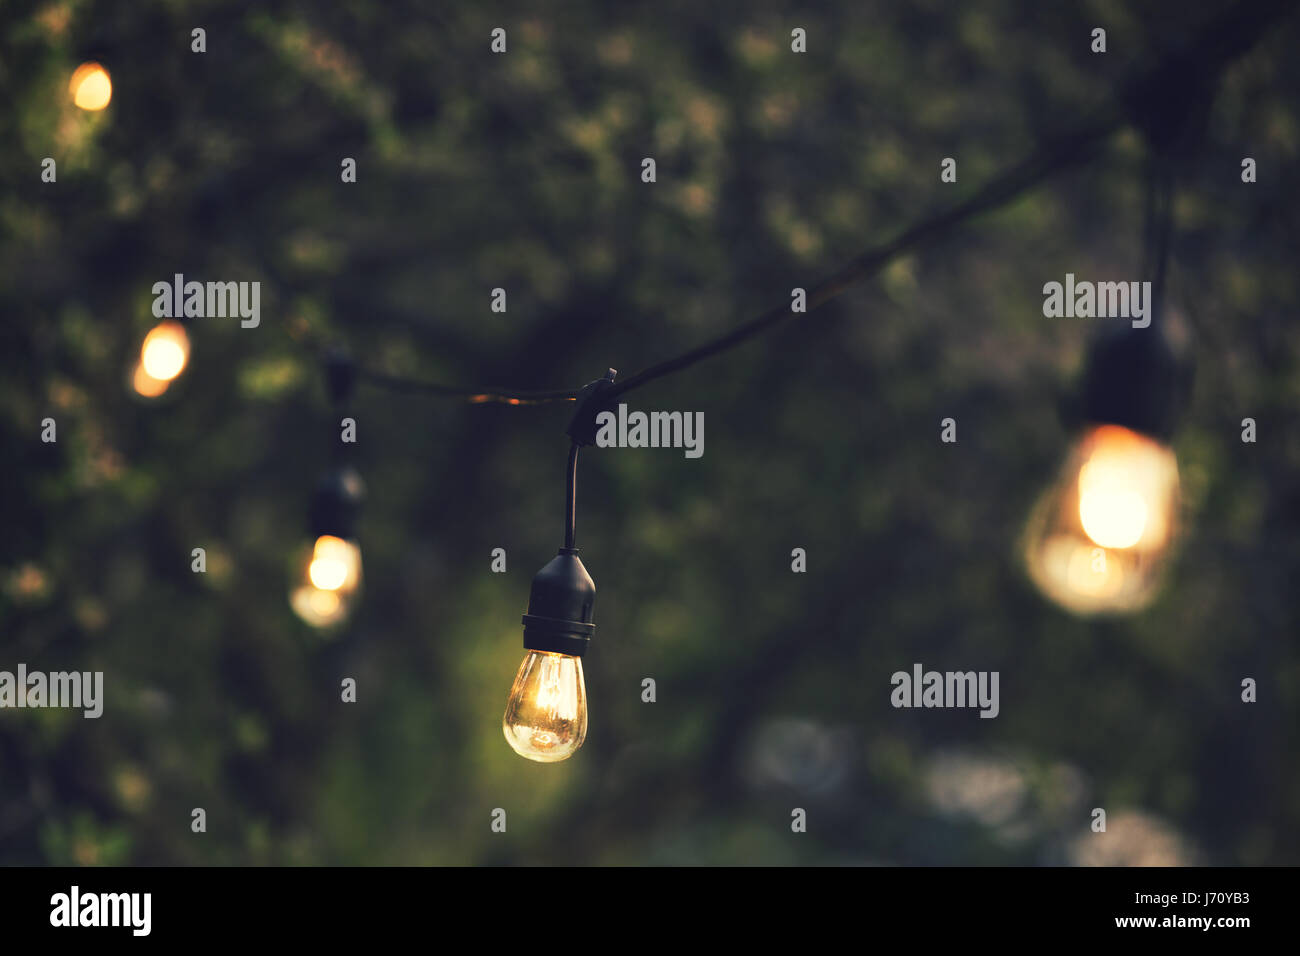 Piscine string lights hanging on a line in backyard Photo Stock